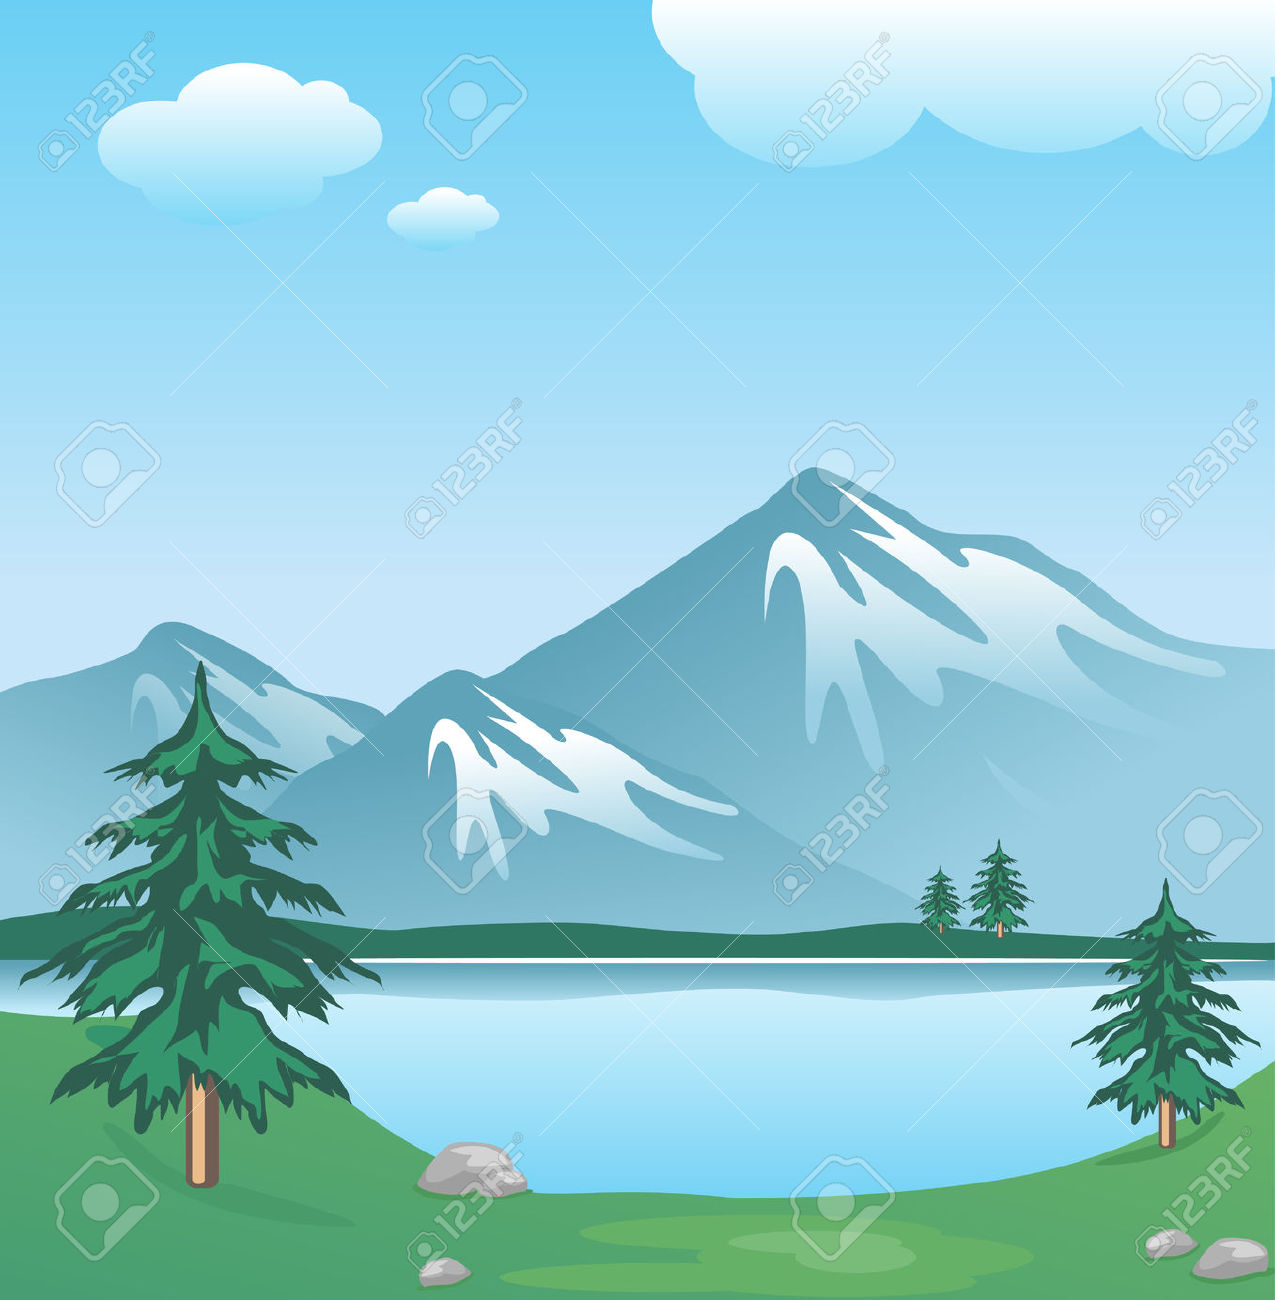 Lake clipart techlodia clipart clipart image